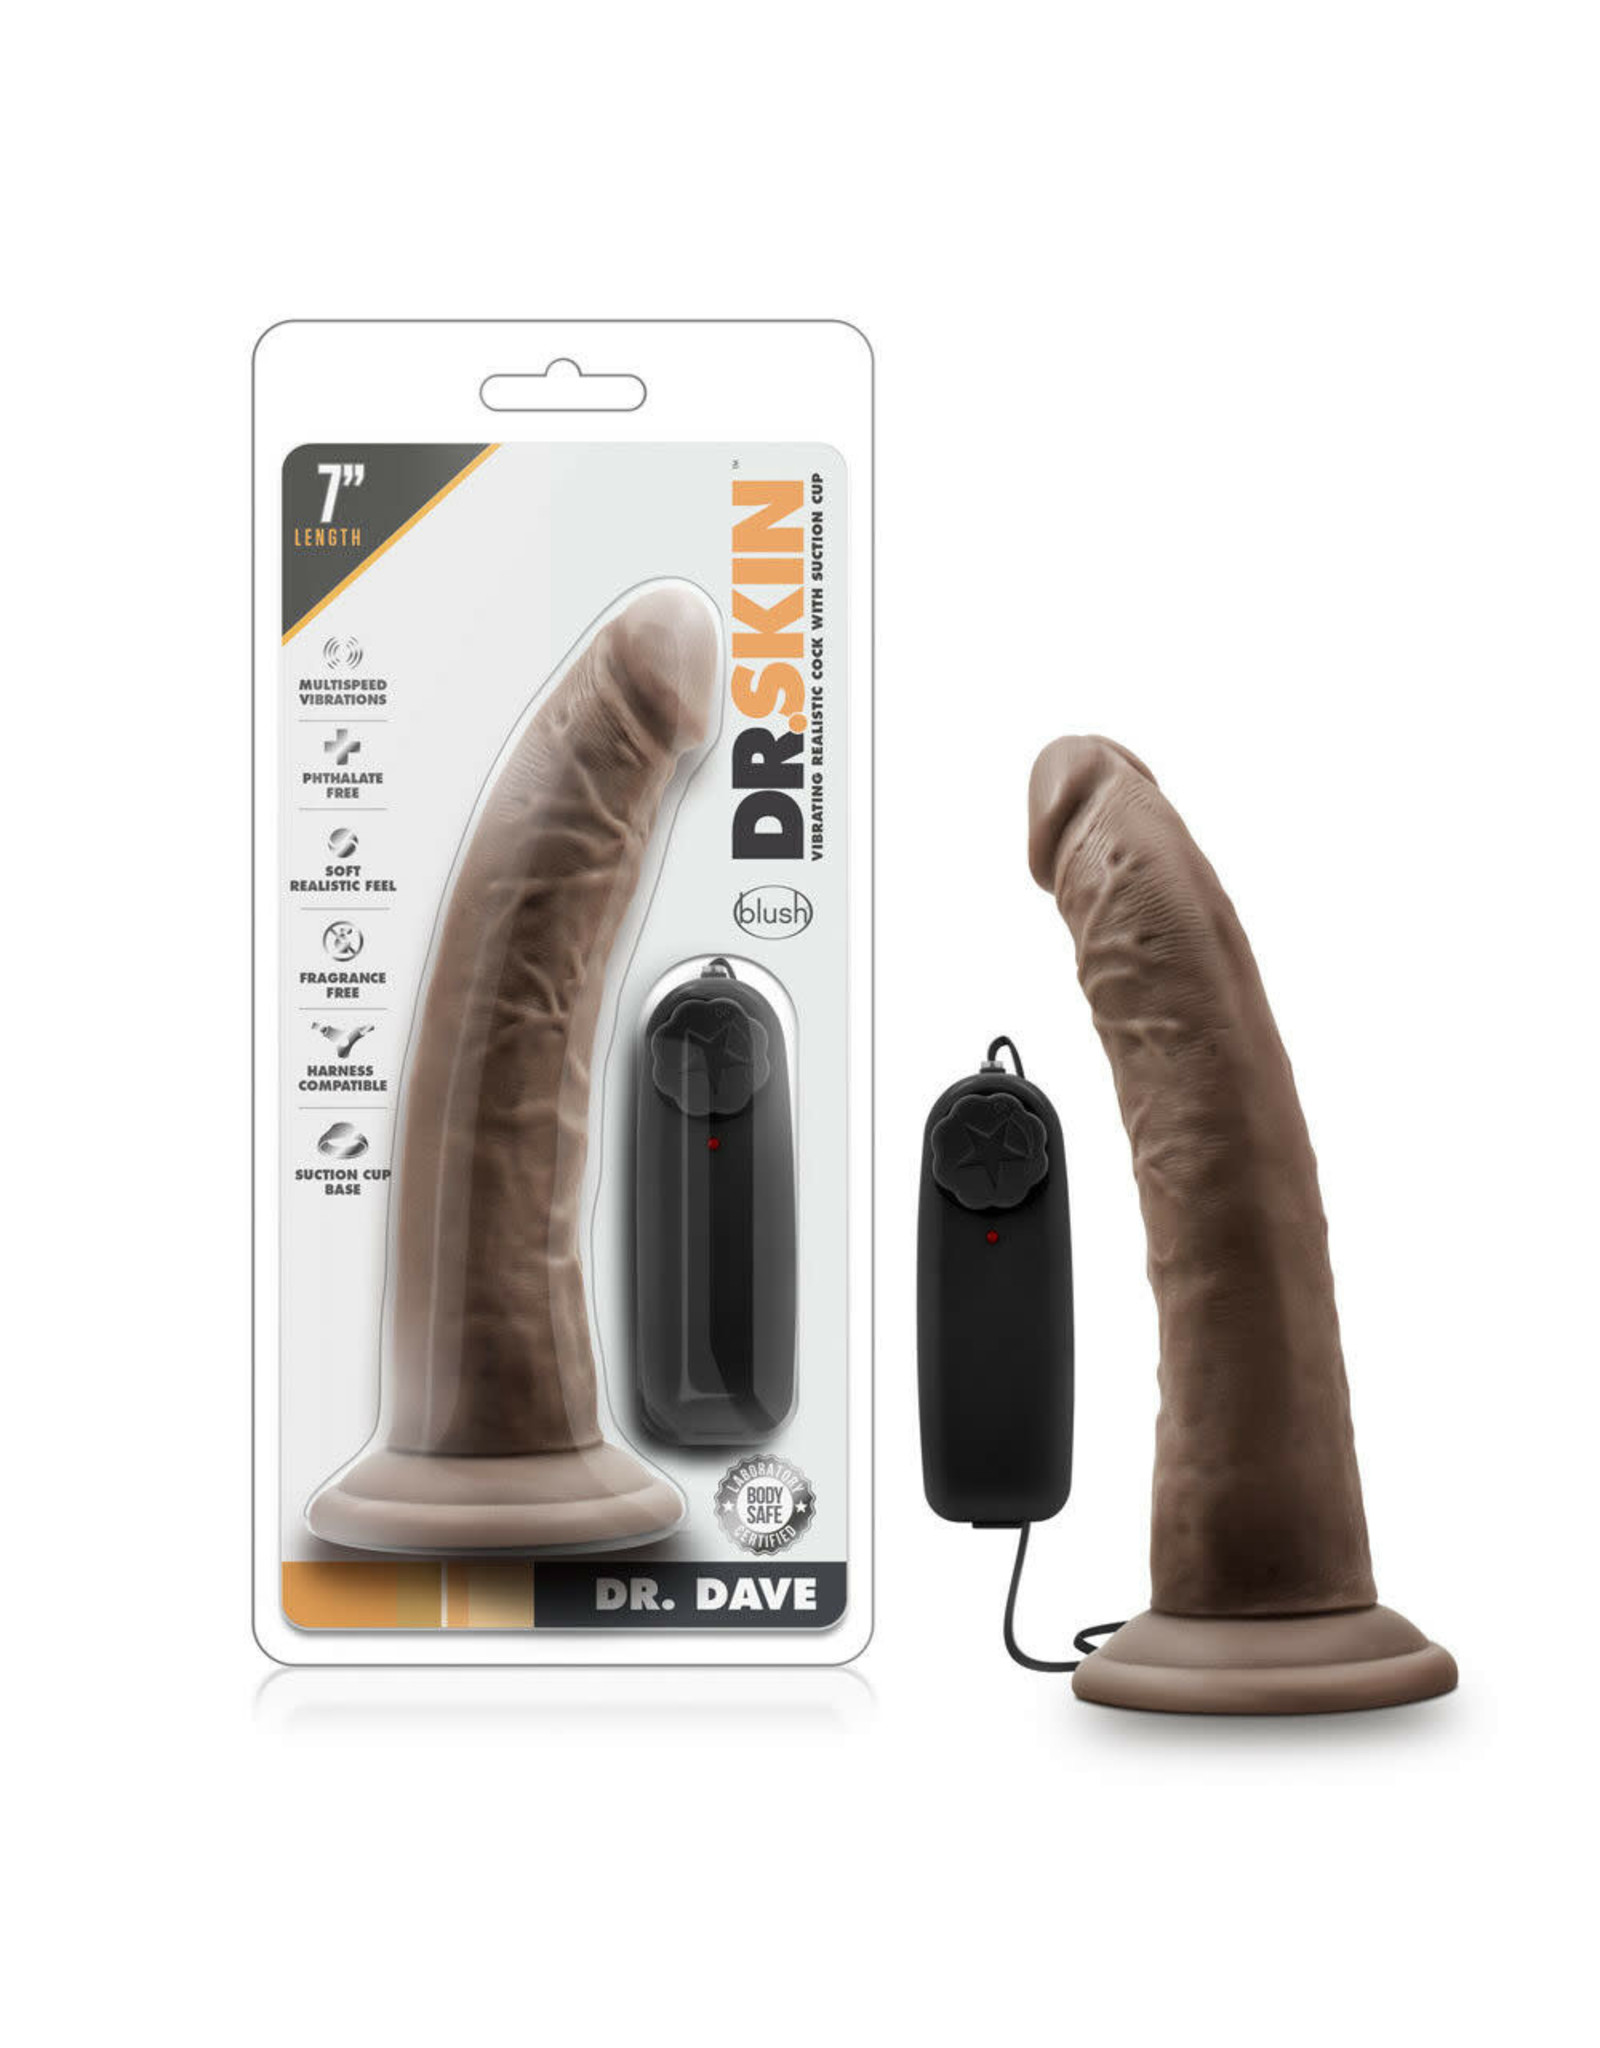 """DR. SKIN BLUSH - DR. SKIN - DR. DAVE - 7"""" VIBRATING COCK WITH SUCTION CUP - CHOCOLATE"""